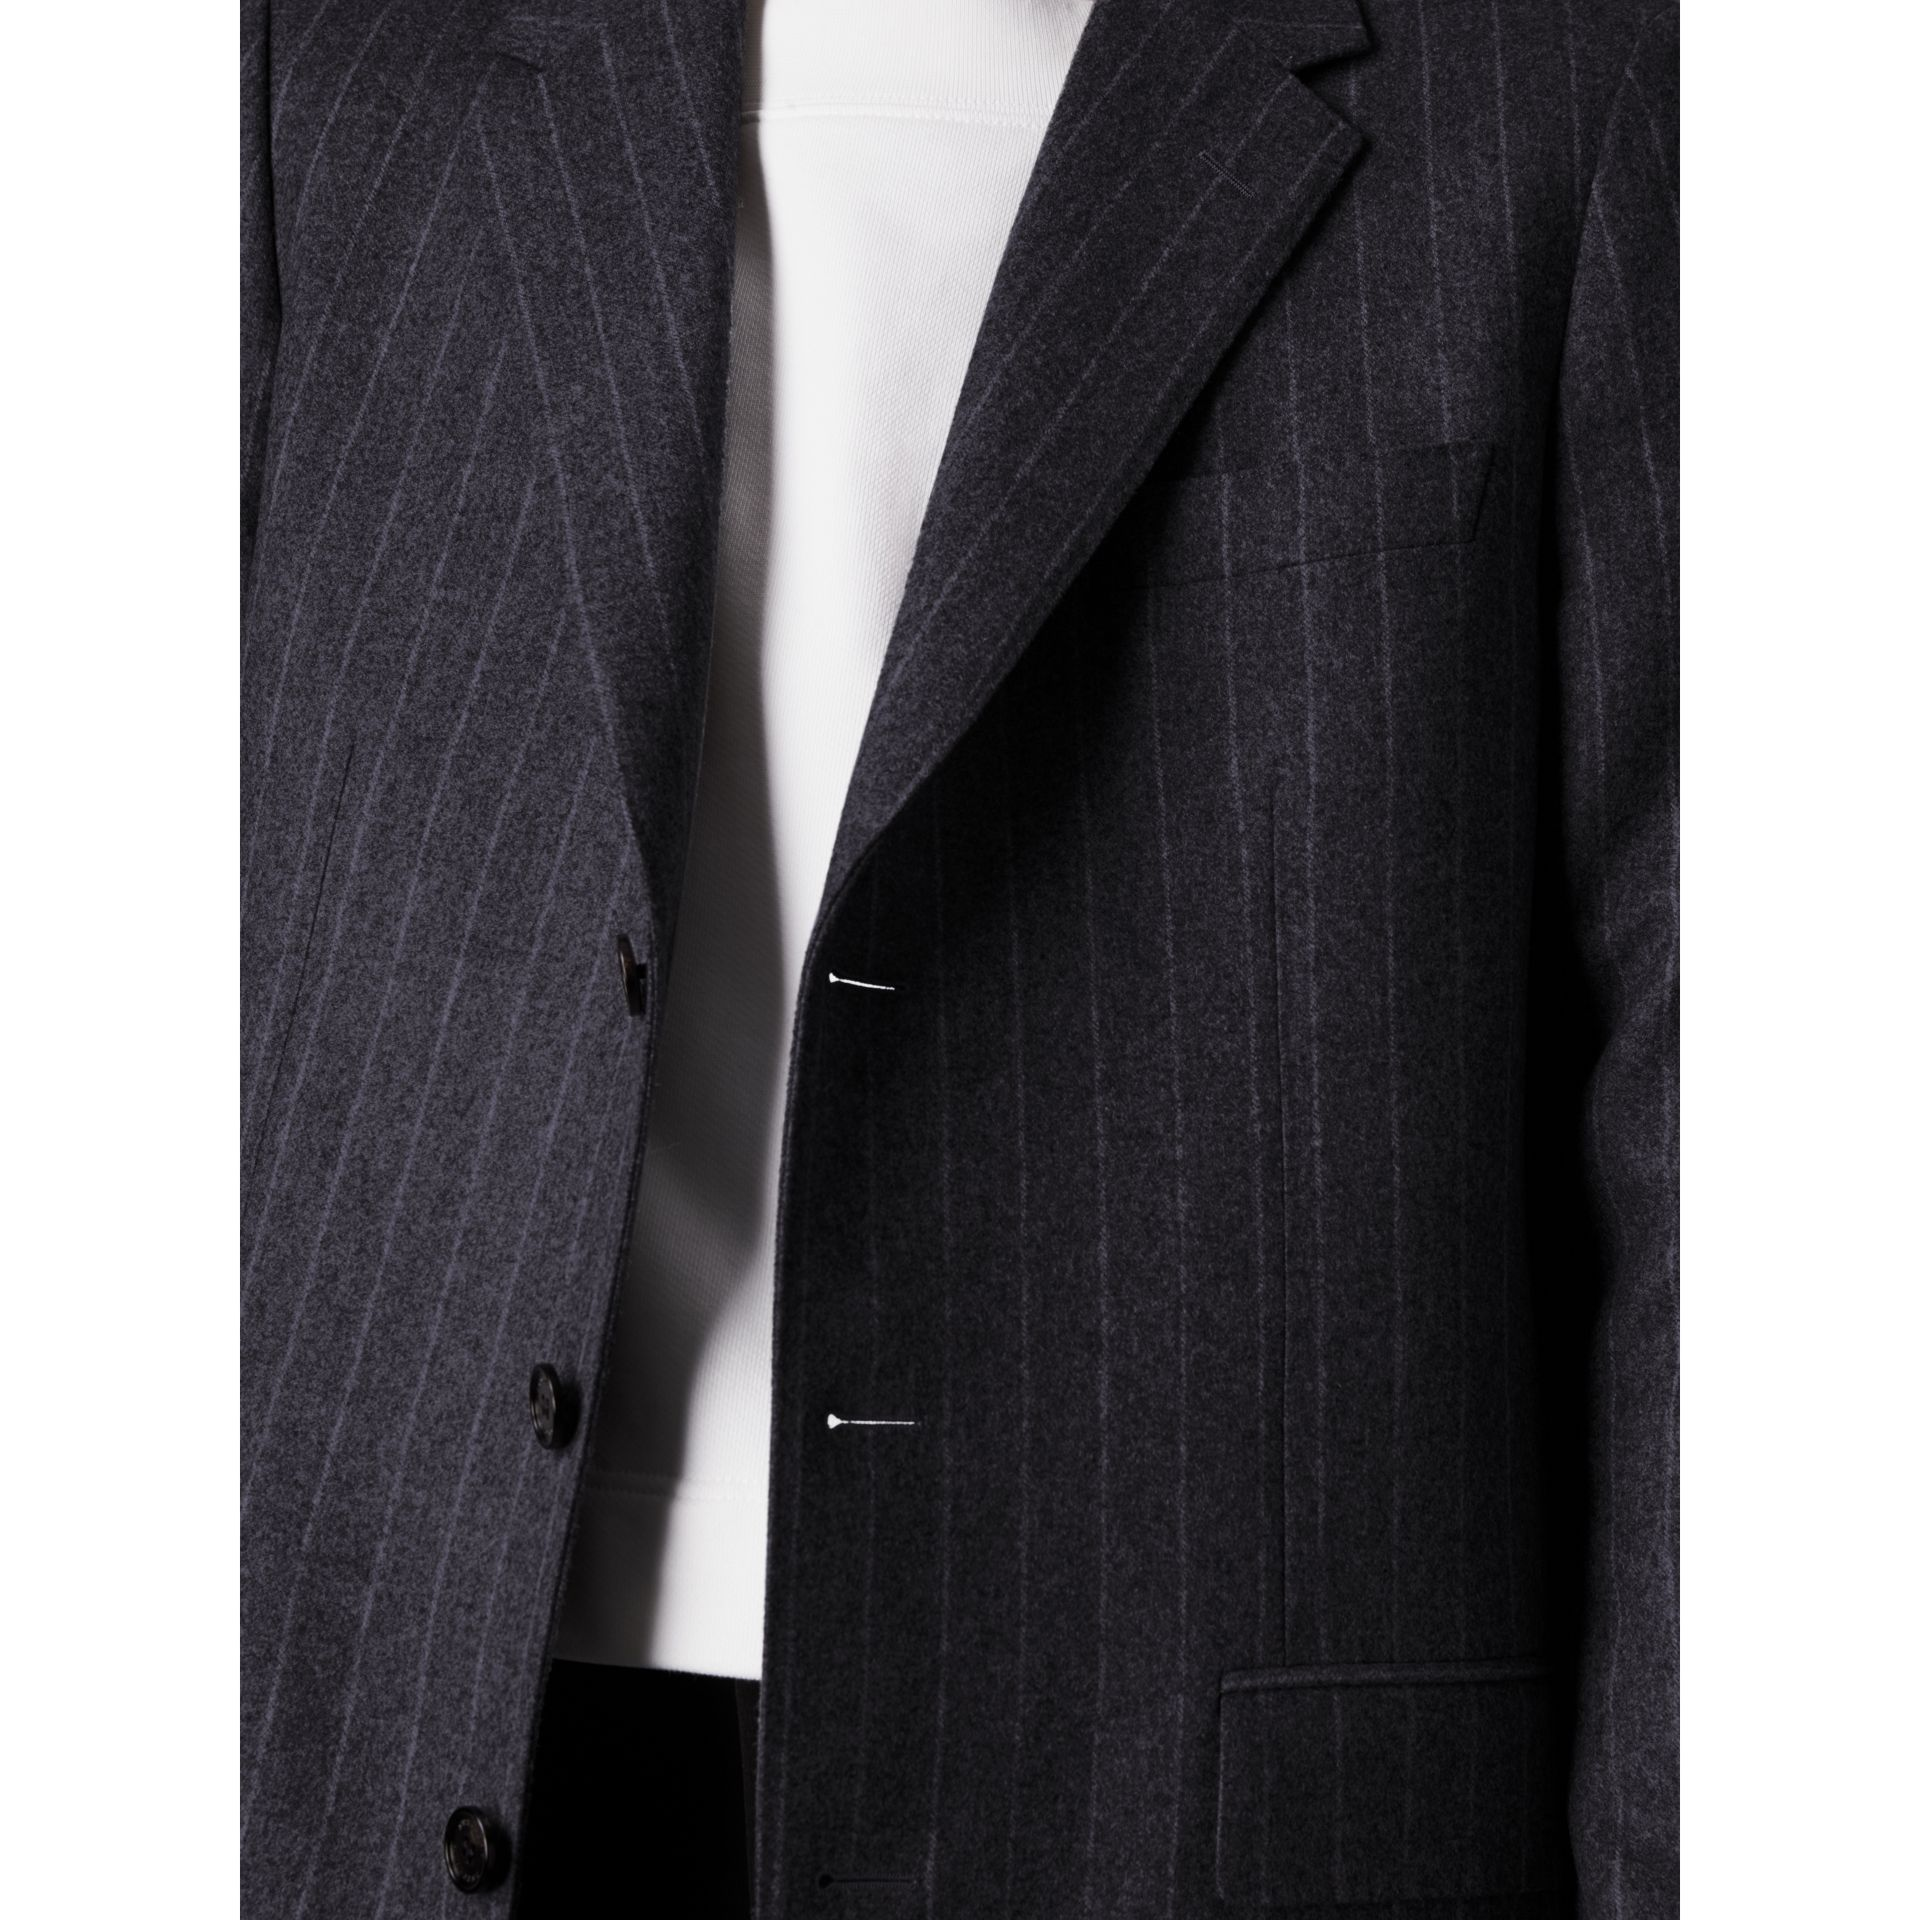 Pinstripe Wool Tailored Jacket in Navy - Men | Burberry - gallery image 2